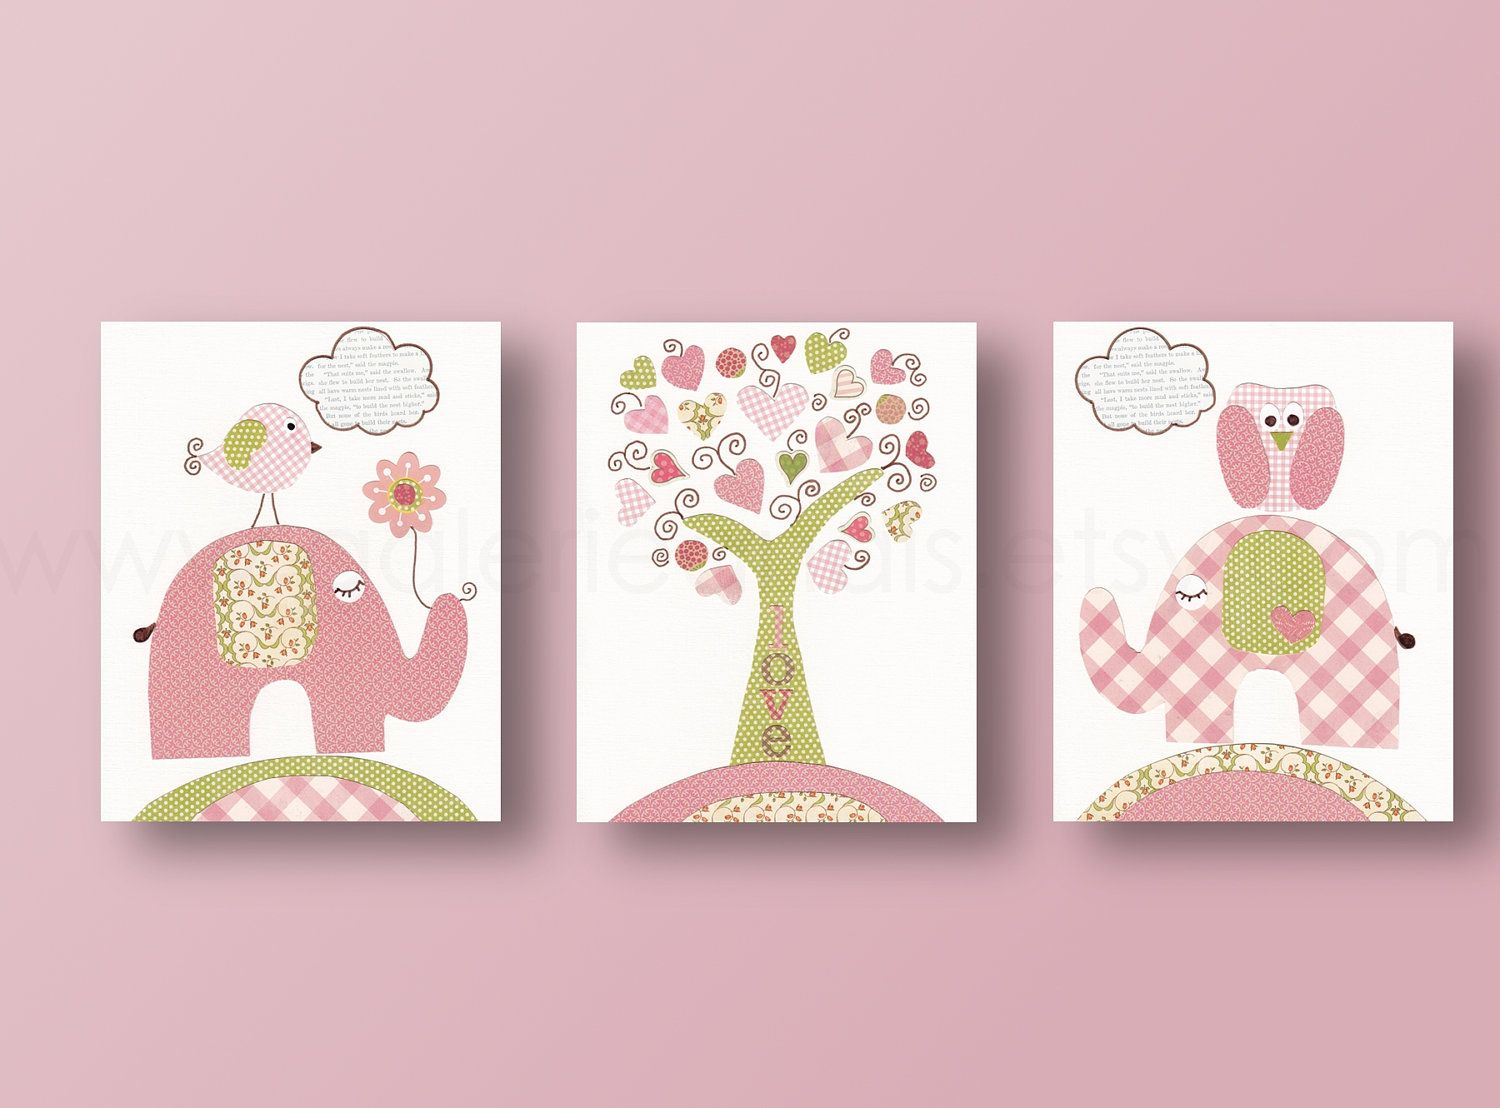 Owl nursery art elephant nursery wall art baby girl nursery decor owl nursery art elephant nursery wall art baby girl nursery decor bird nursery kids wall decor tree nursery set of 3 prints tree of love amipublicfo Gallery